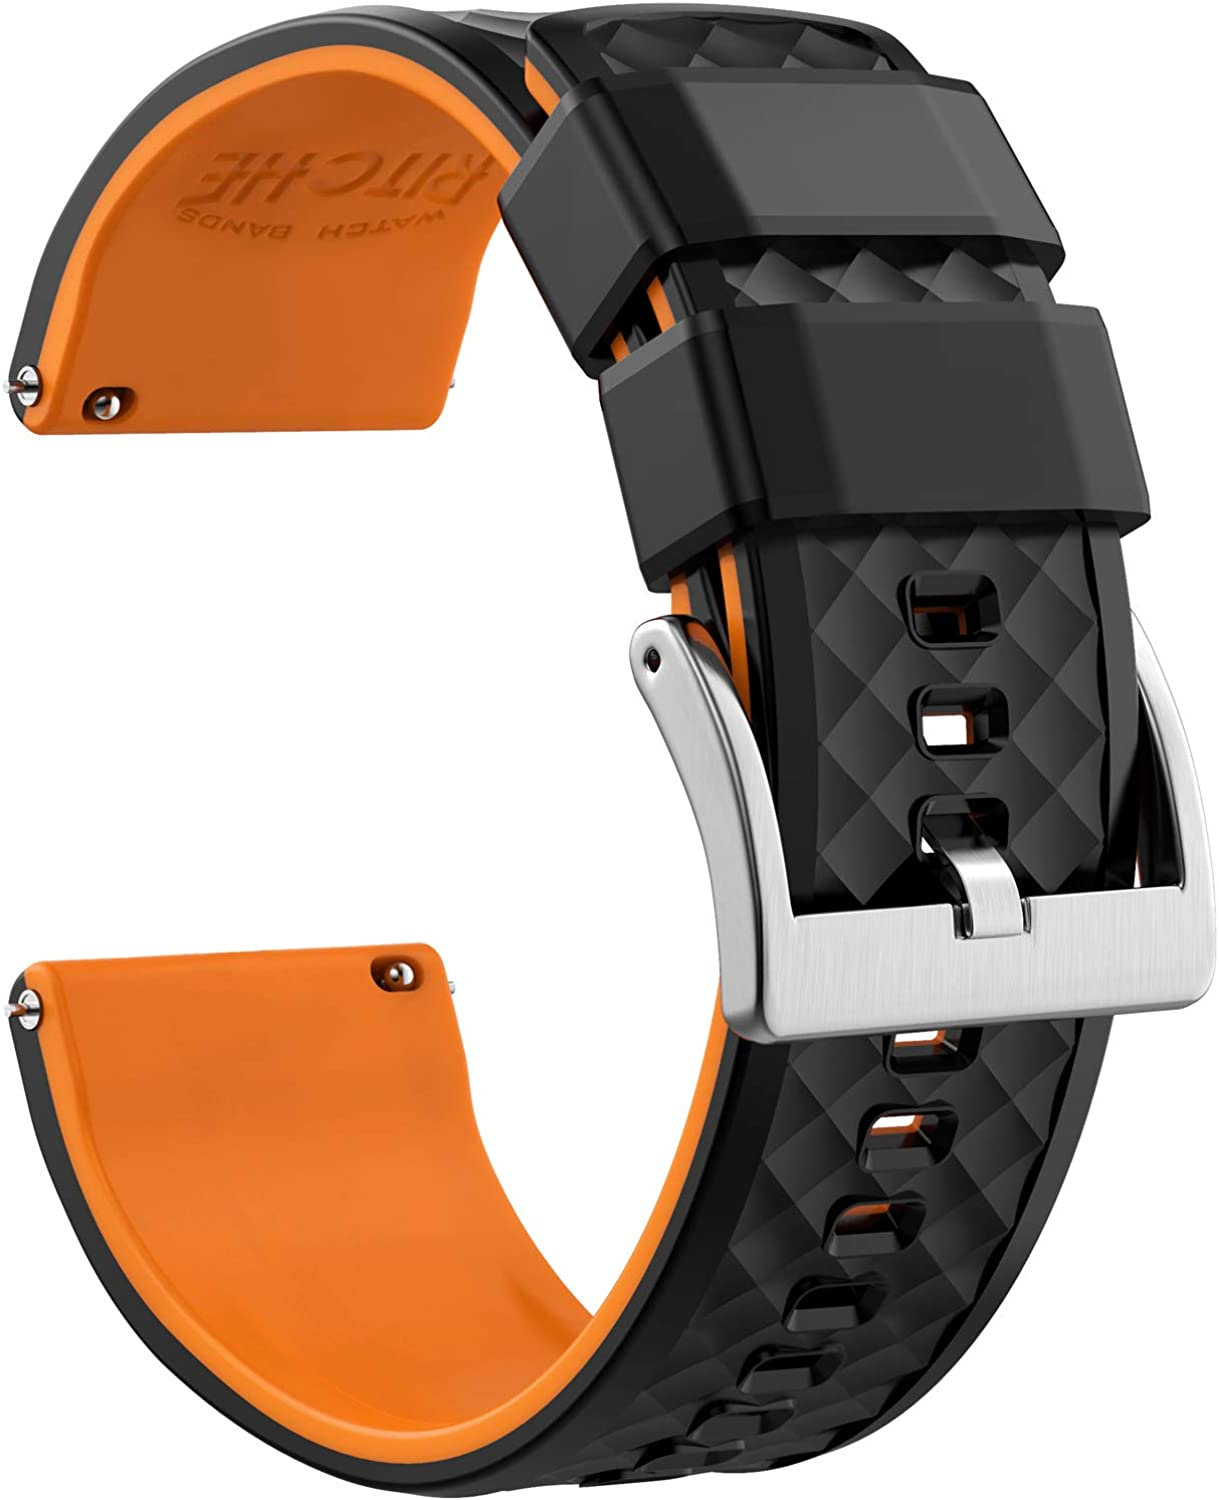 Cheap super special price Ritche Silicone Watch Max 49% OFF Bands 18mm 19mm 23mm Q 24mm 22mm 21mm 20mm